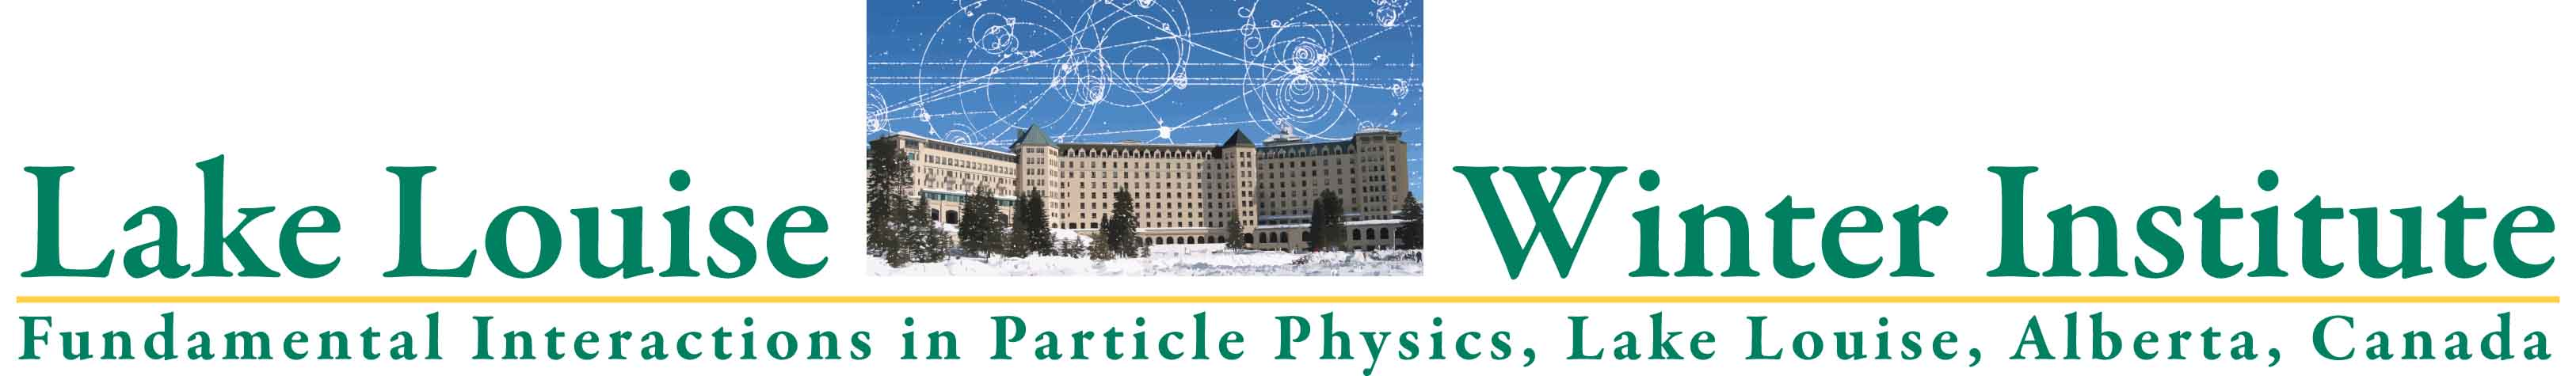 2017 Lake Louise Winter Institute